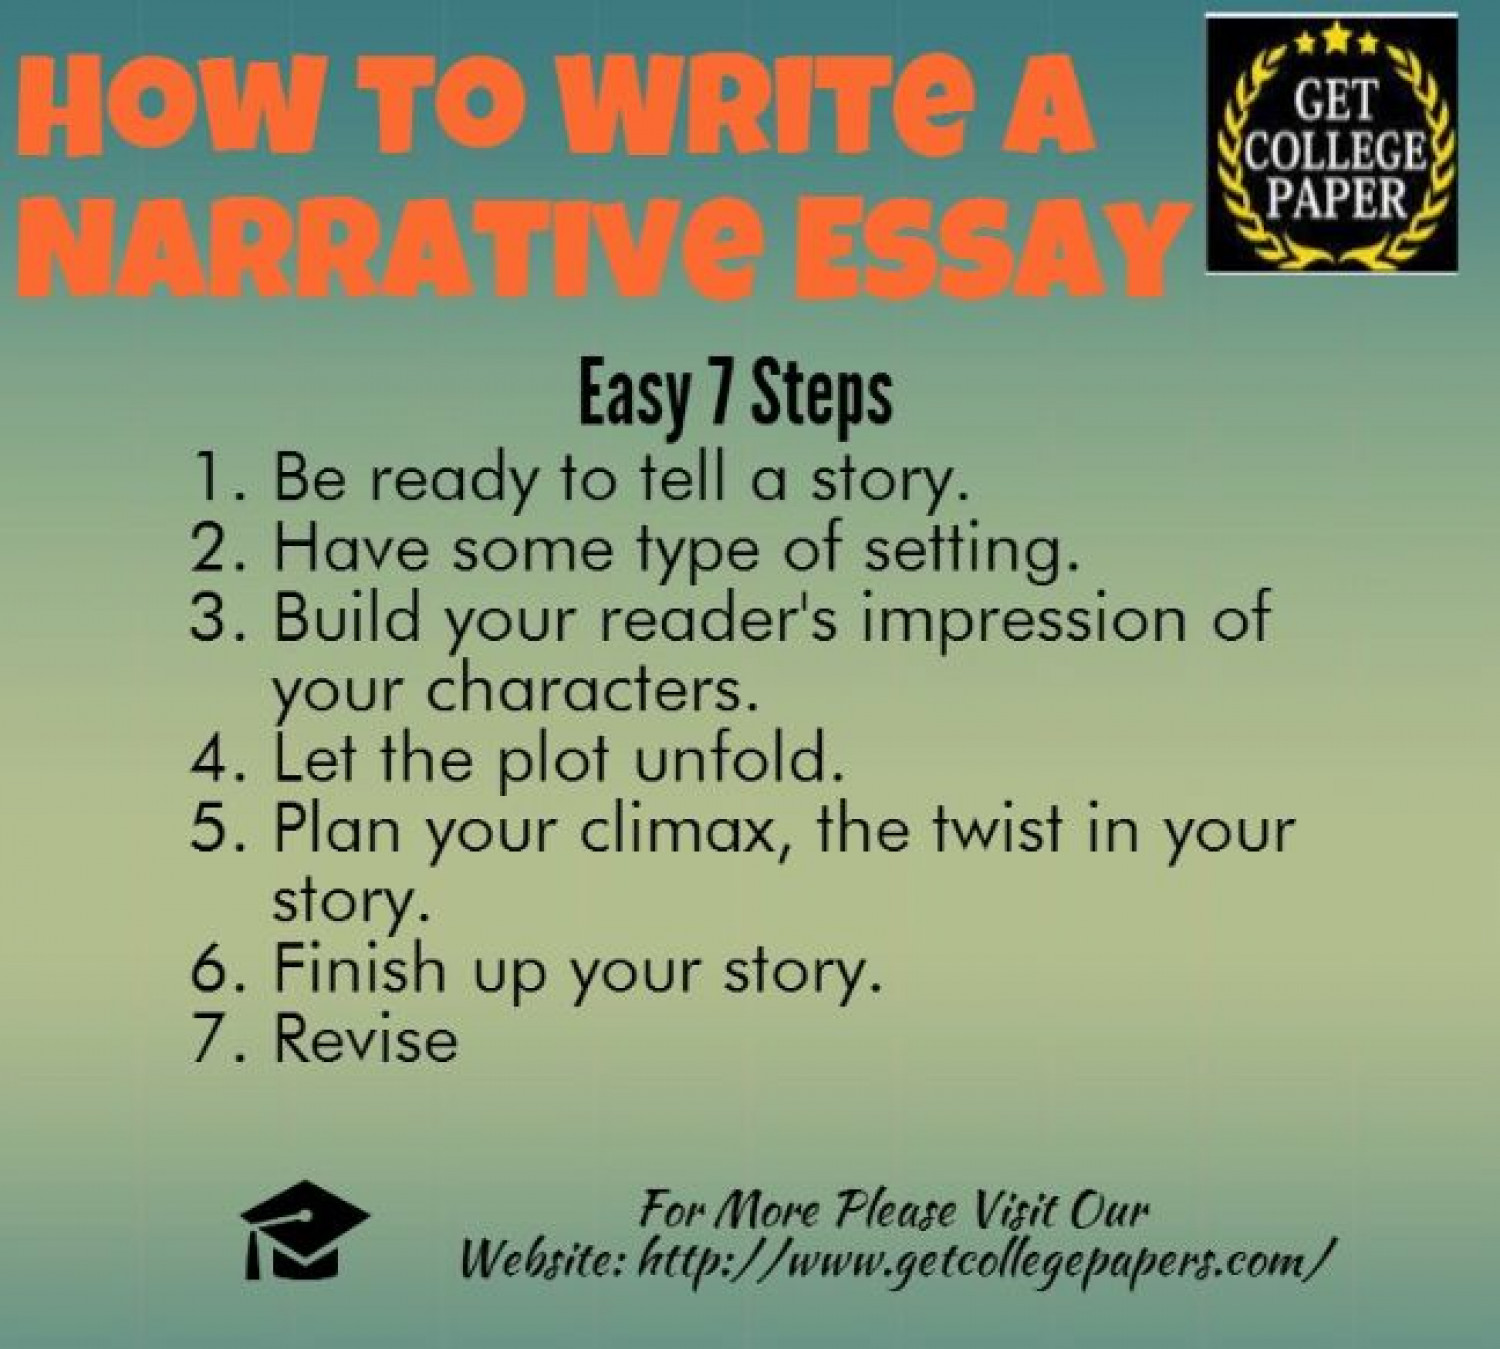 website that writes essay for you professional writing service for  narrative essays help how do you write a narrative essay jeroen stevens how do you write